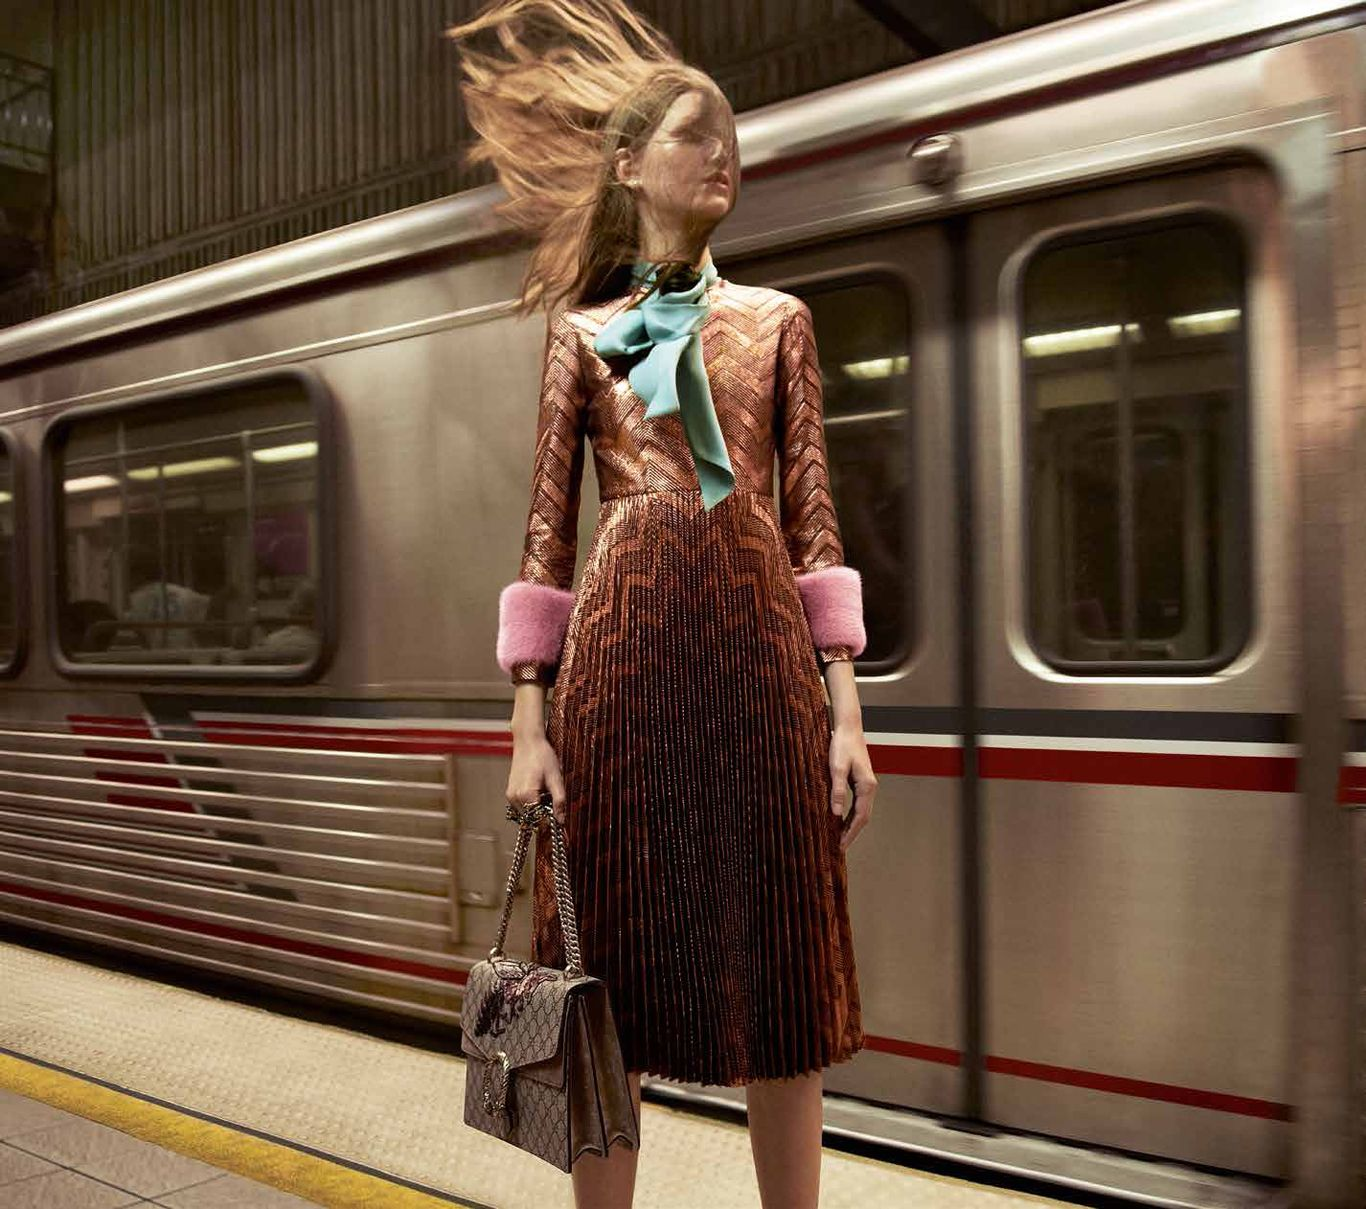 Guccis New Ads Are Further Proof of L.A.s Fashion Power